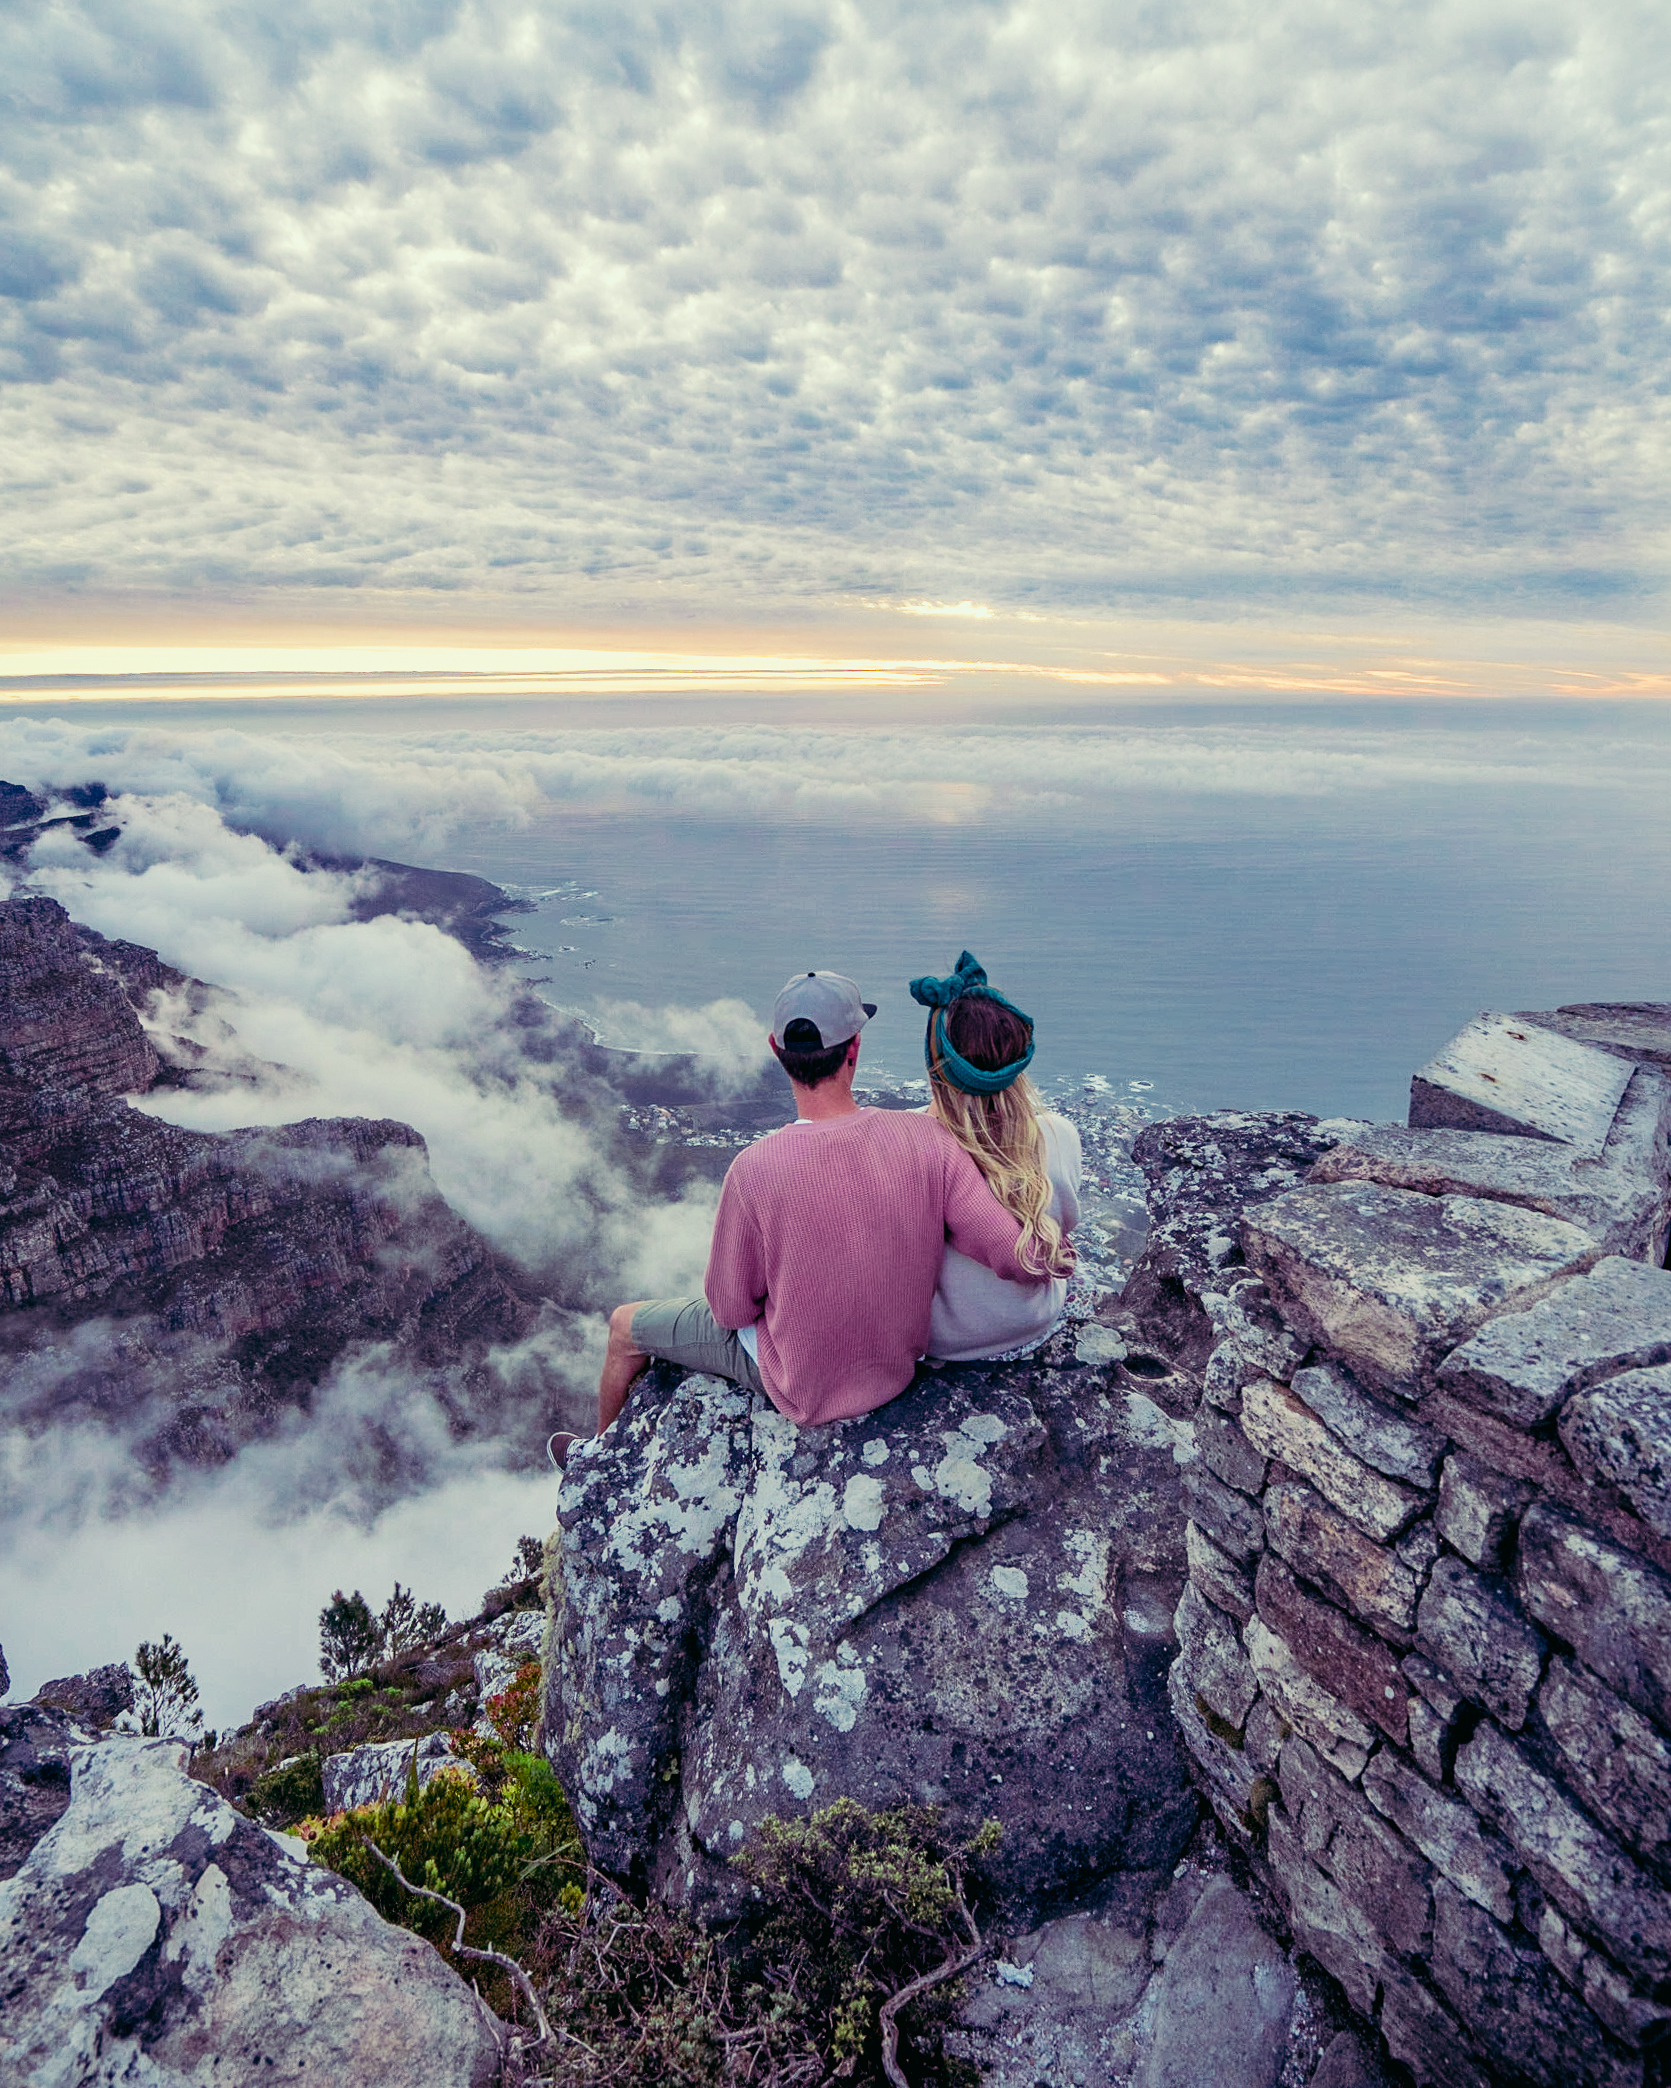 Sony A7R iii, Table Mountain South Africa